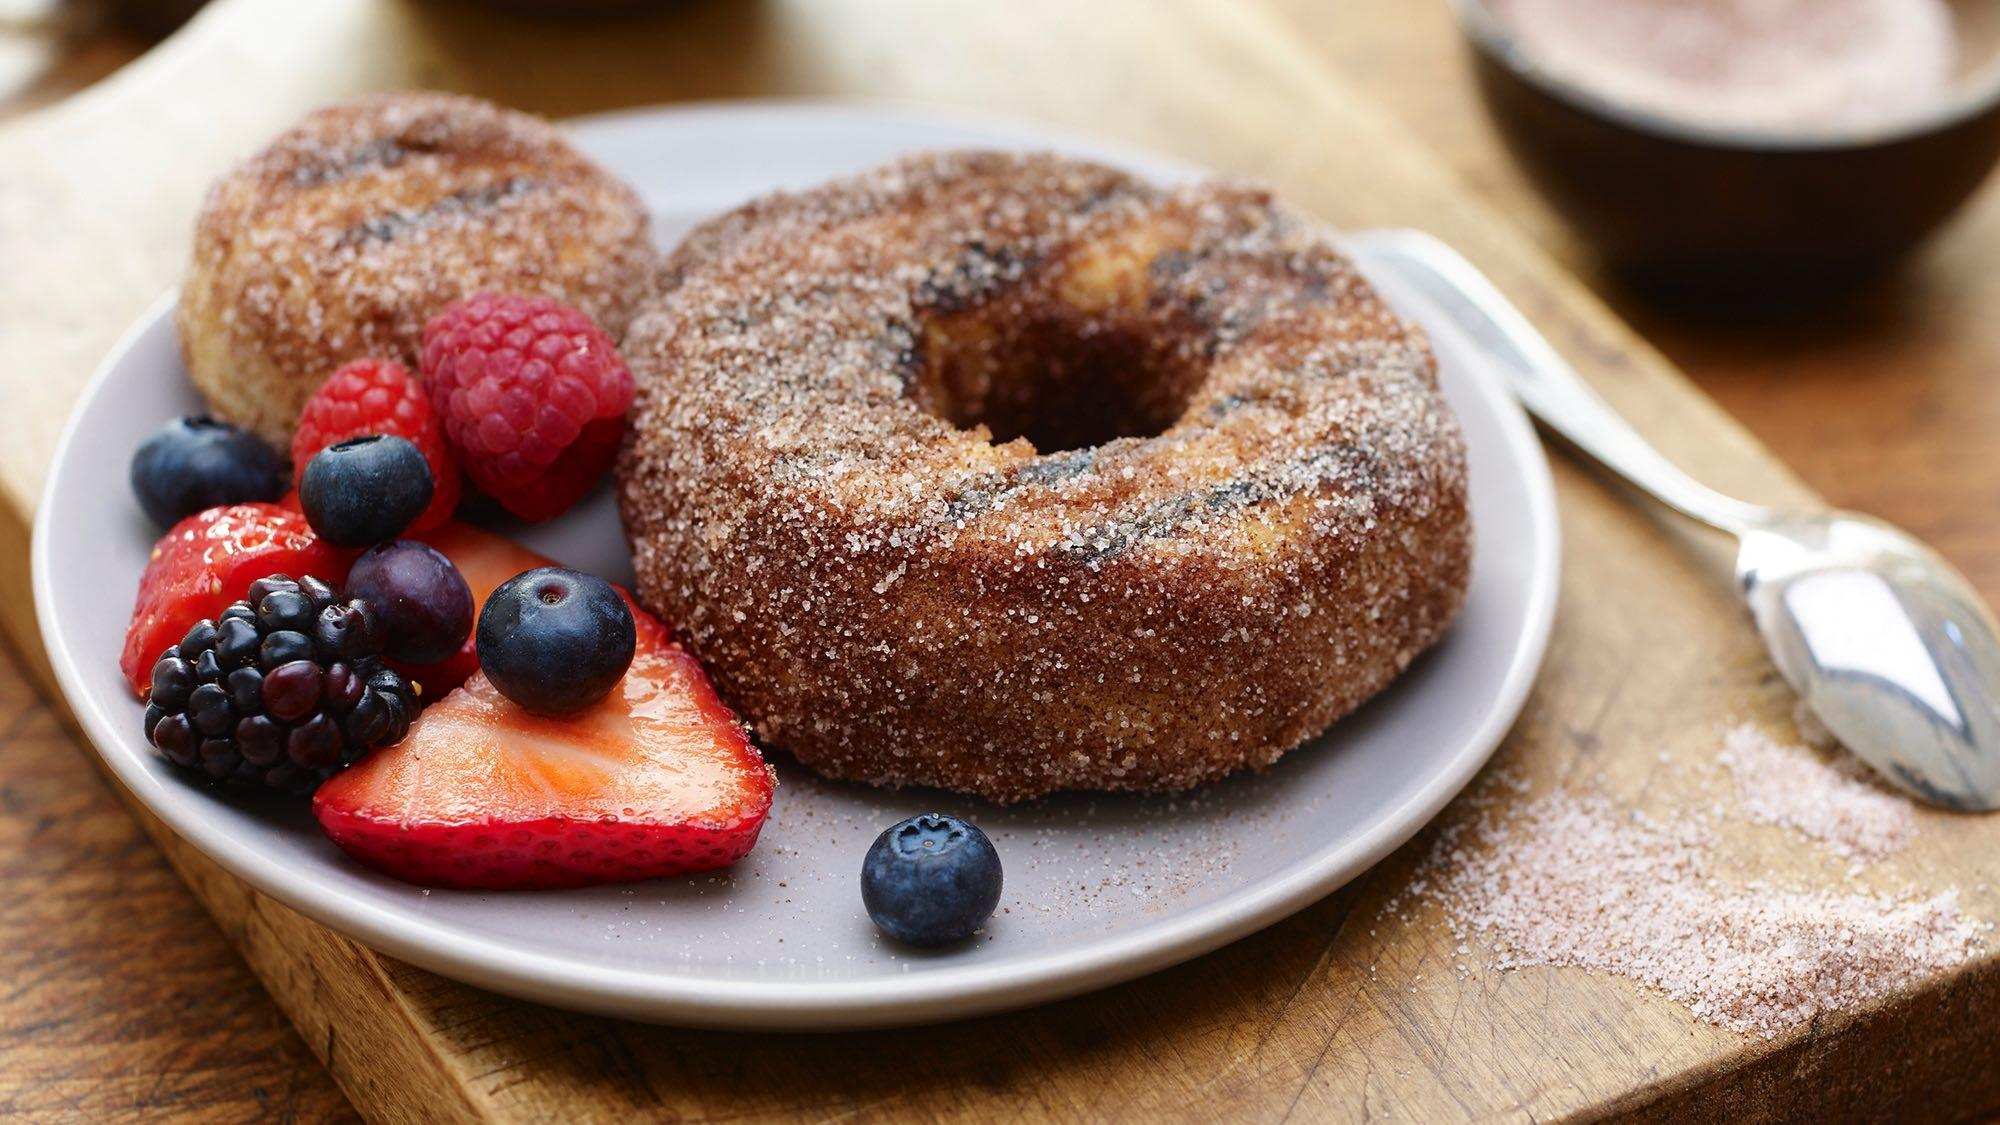 30 Days of Grilled Desserts - Cinnamon Sugar Grilled Donuts via McCormick | https://www.roseclearfield.com